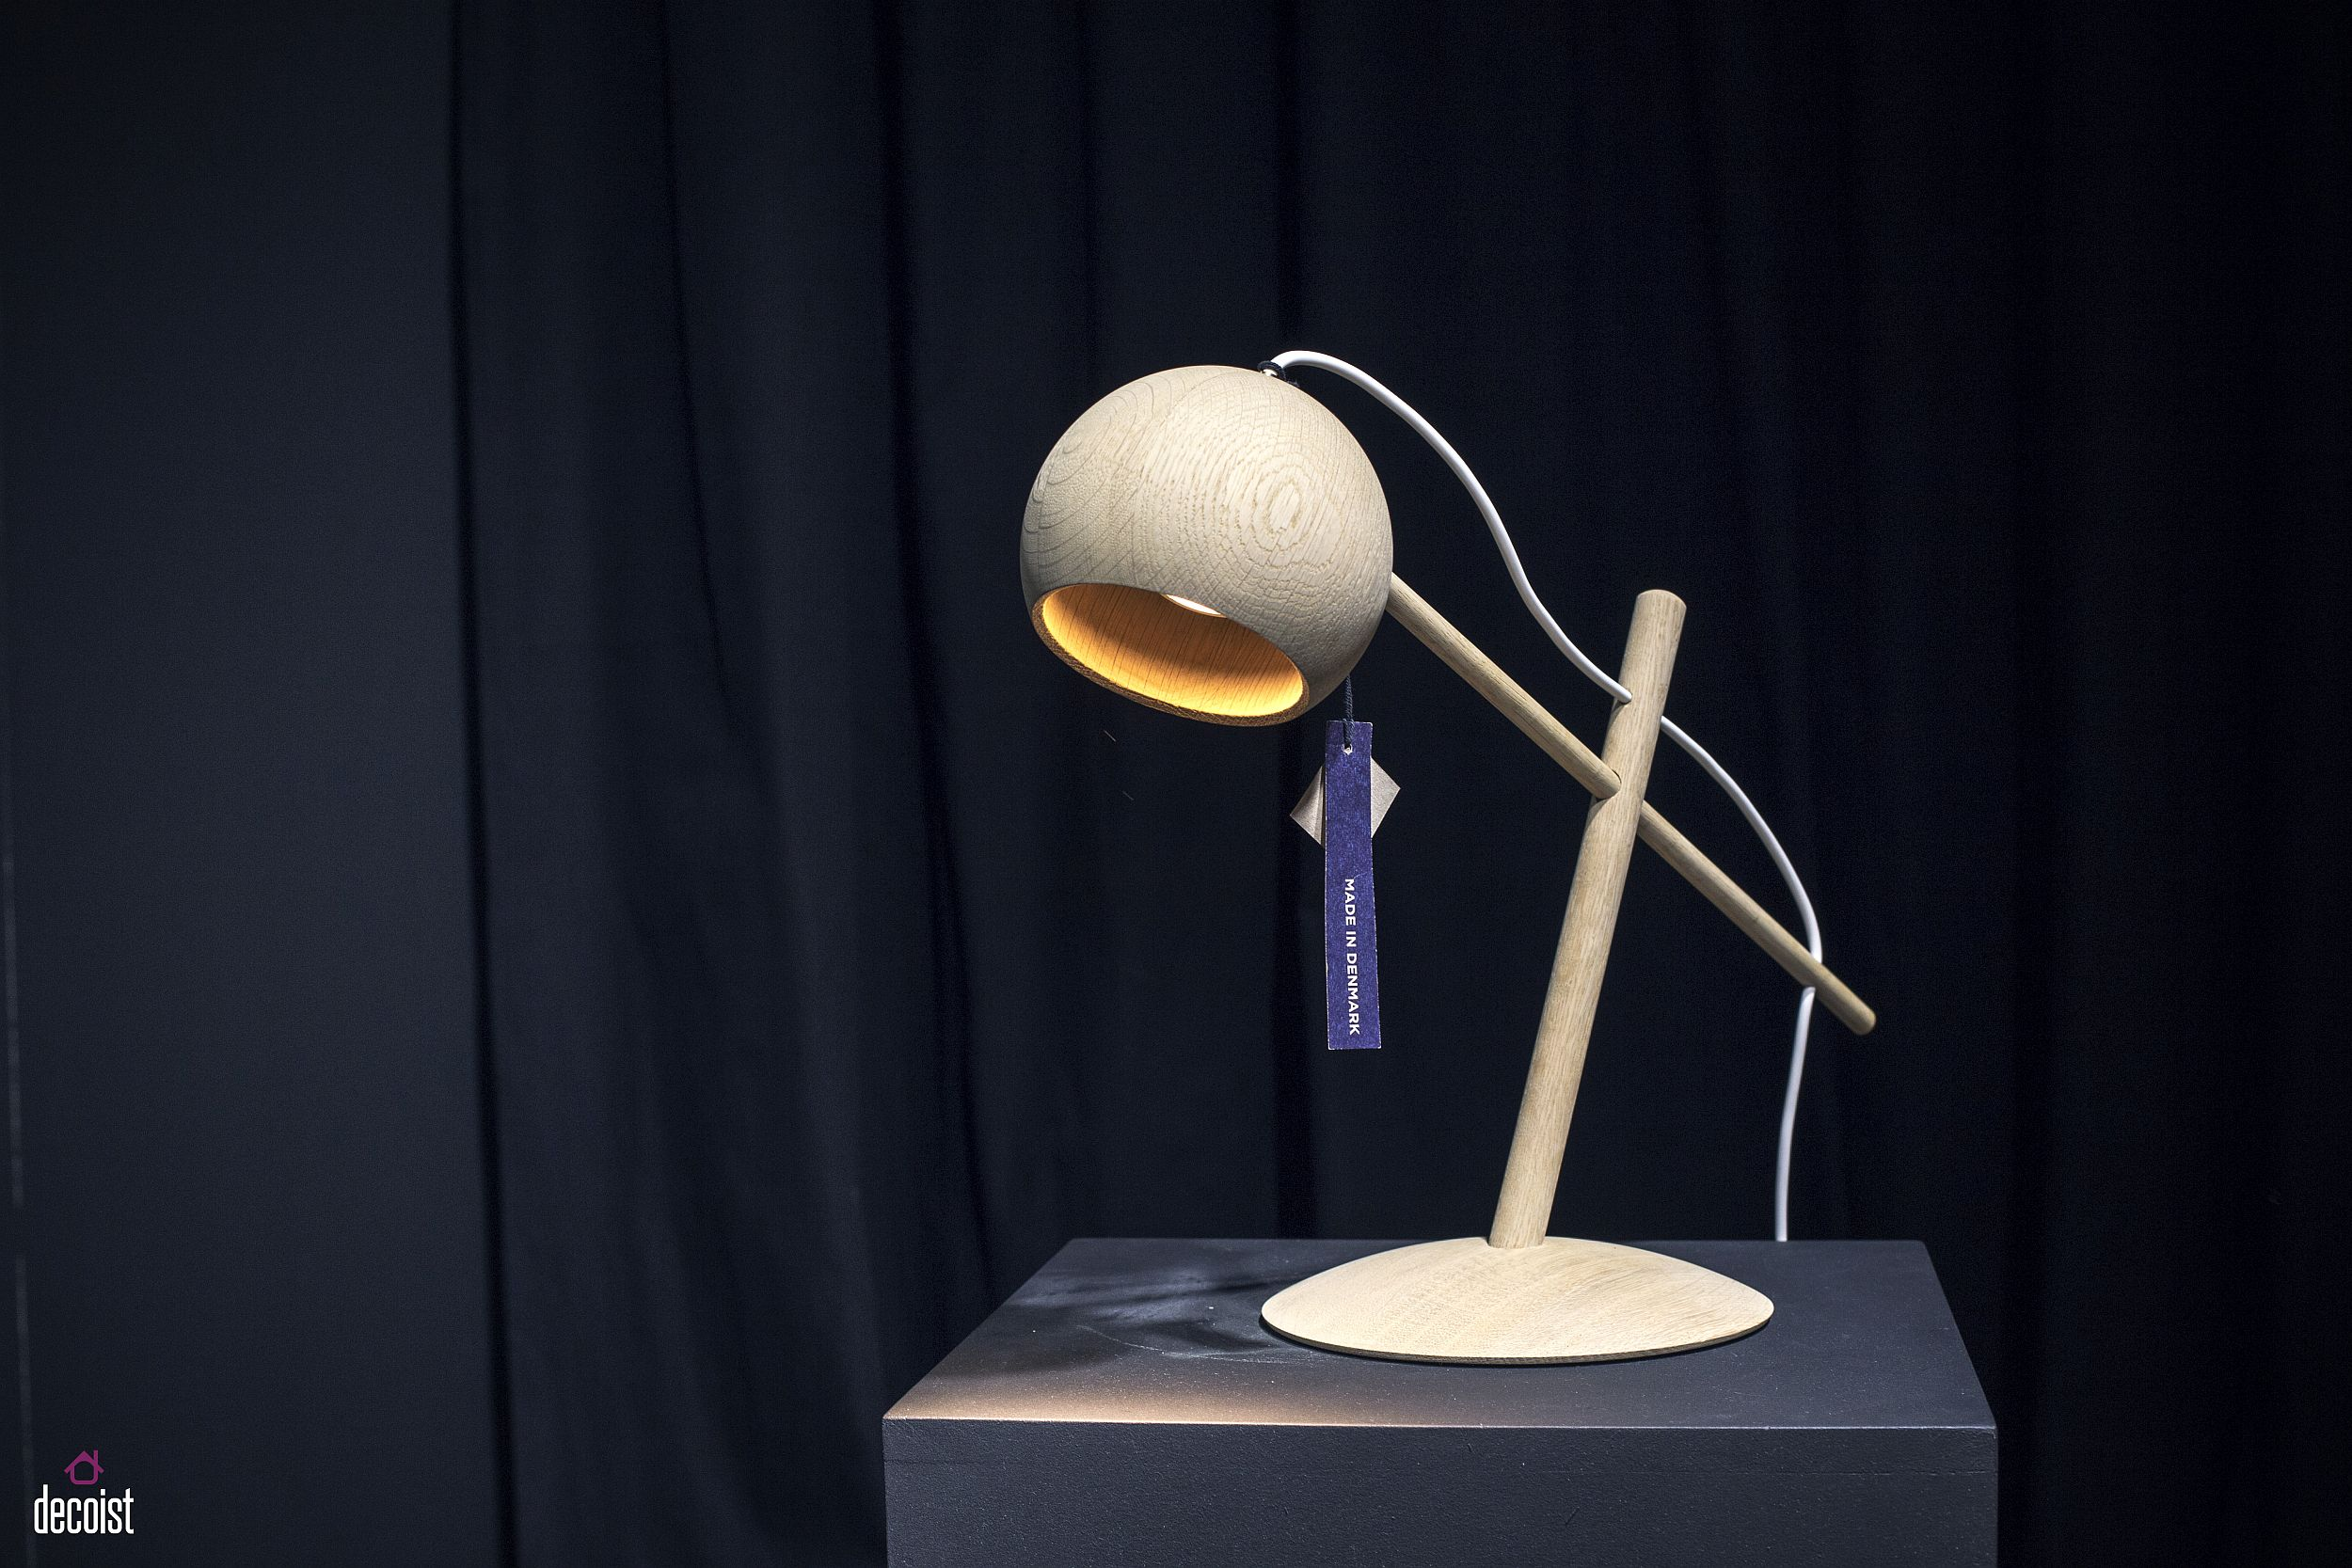 Dashing Lune Lamp from Brdr. Krüger brings mid-century modern Danish deisgn to contemporary homes